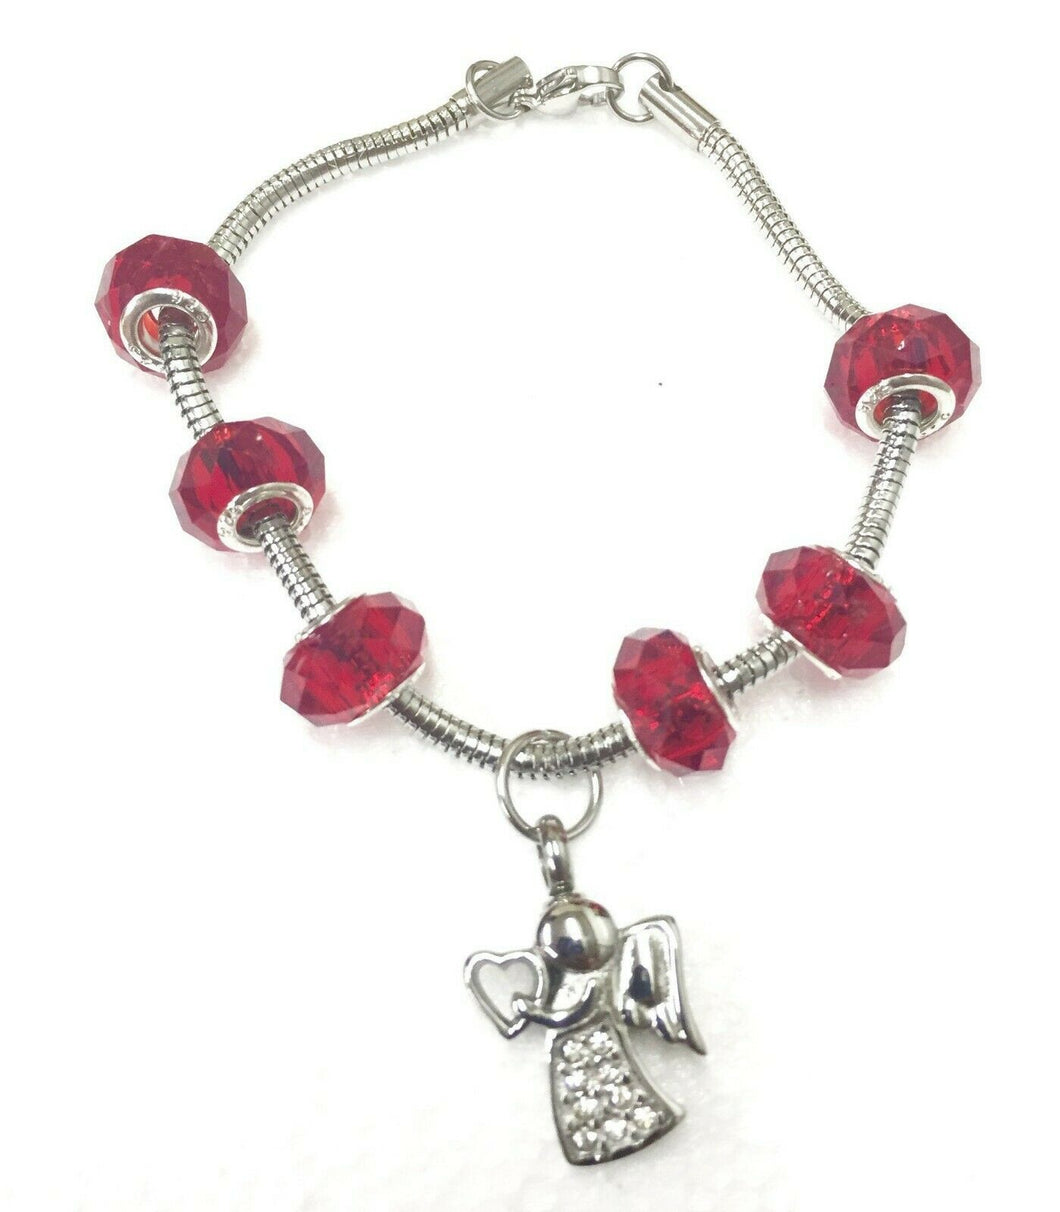 Ruby Red Murano Bead Bracelet Funeral Cremation Urn for Ashes